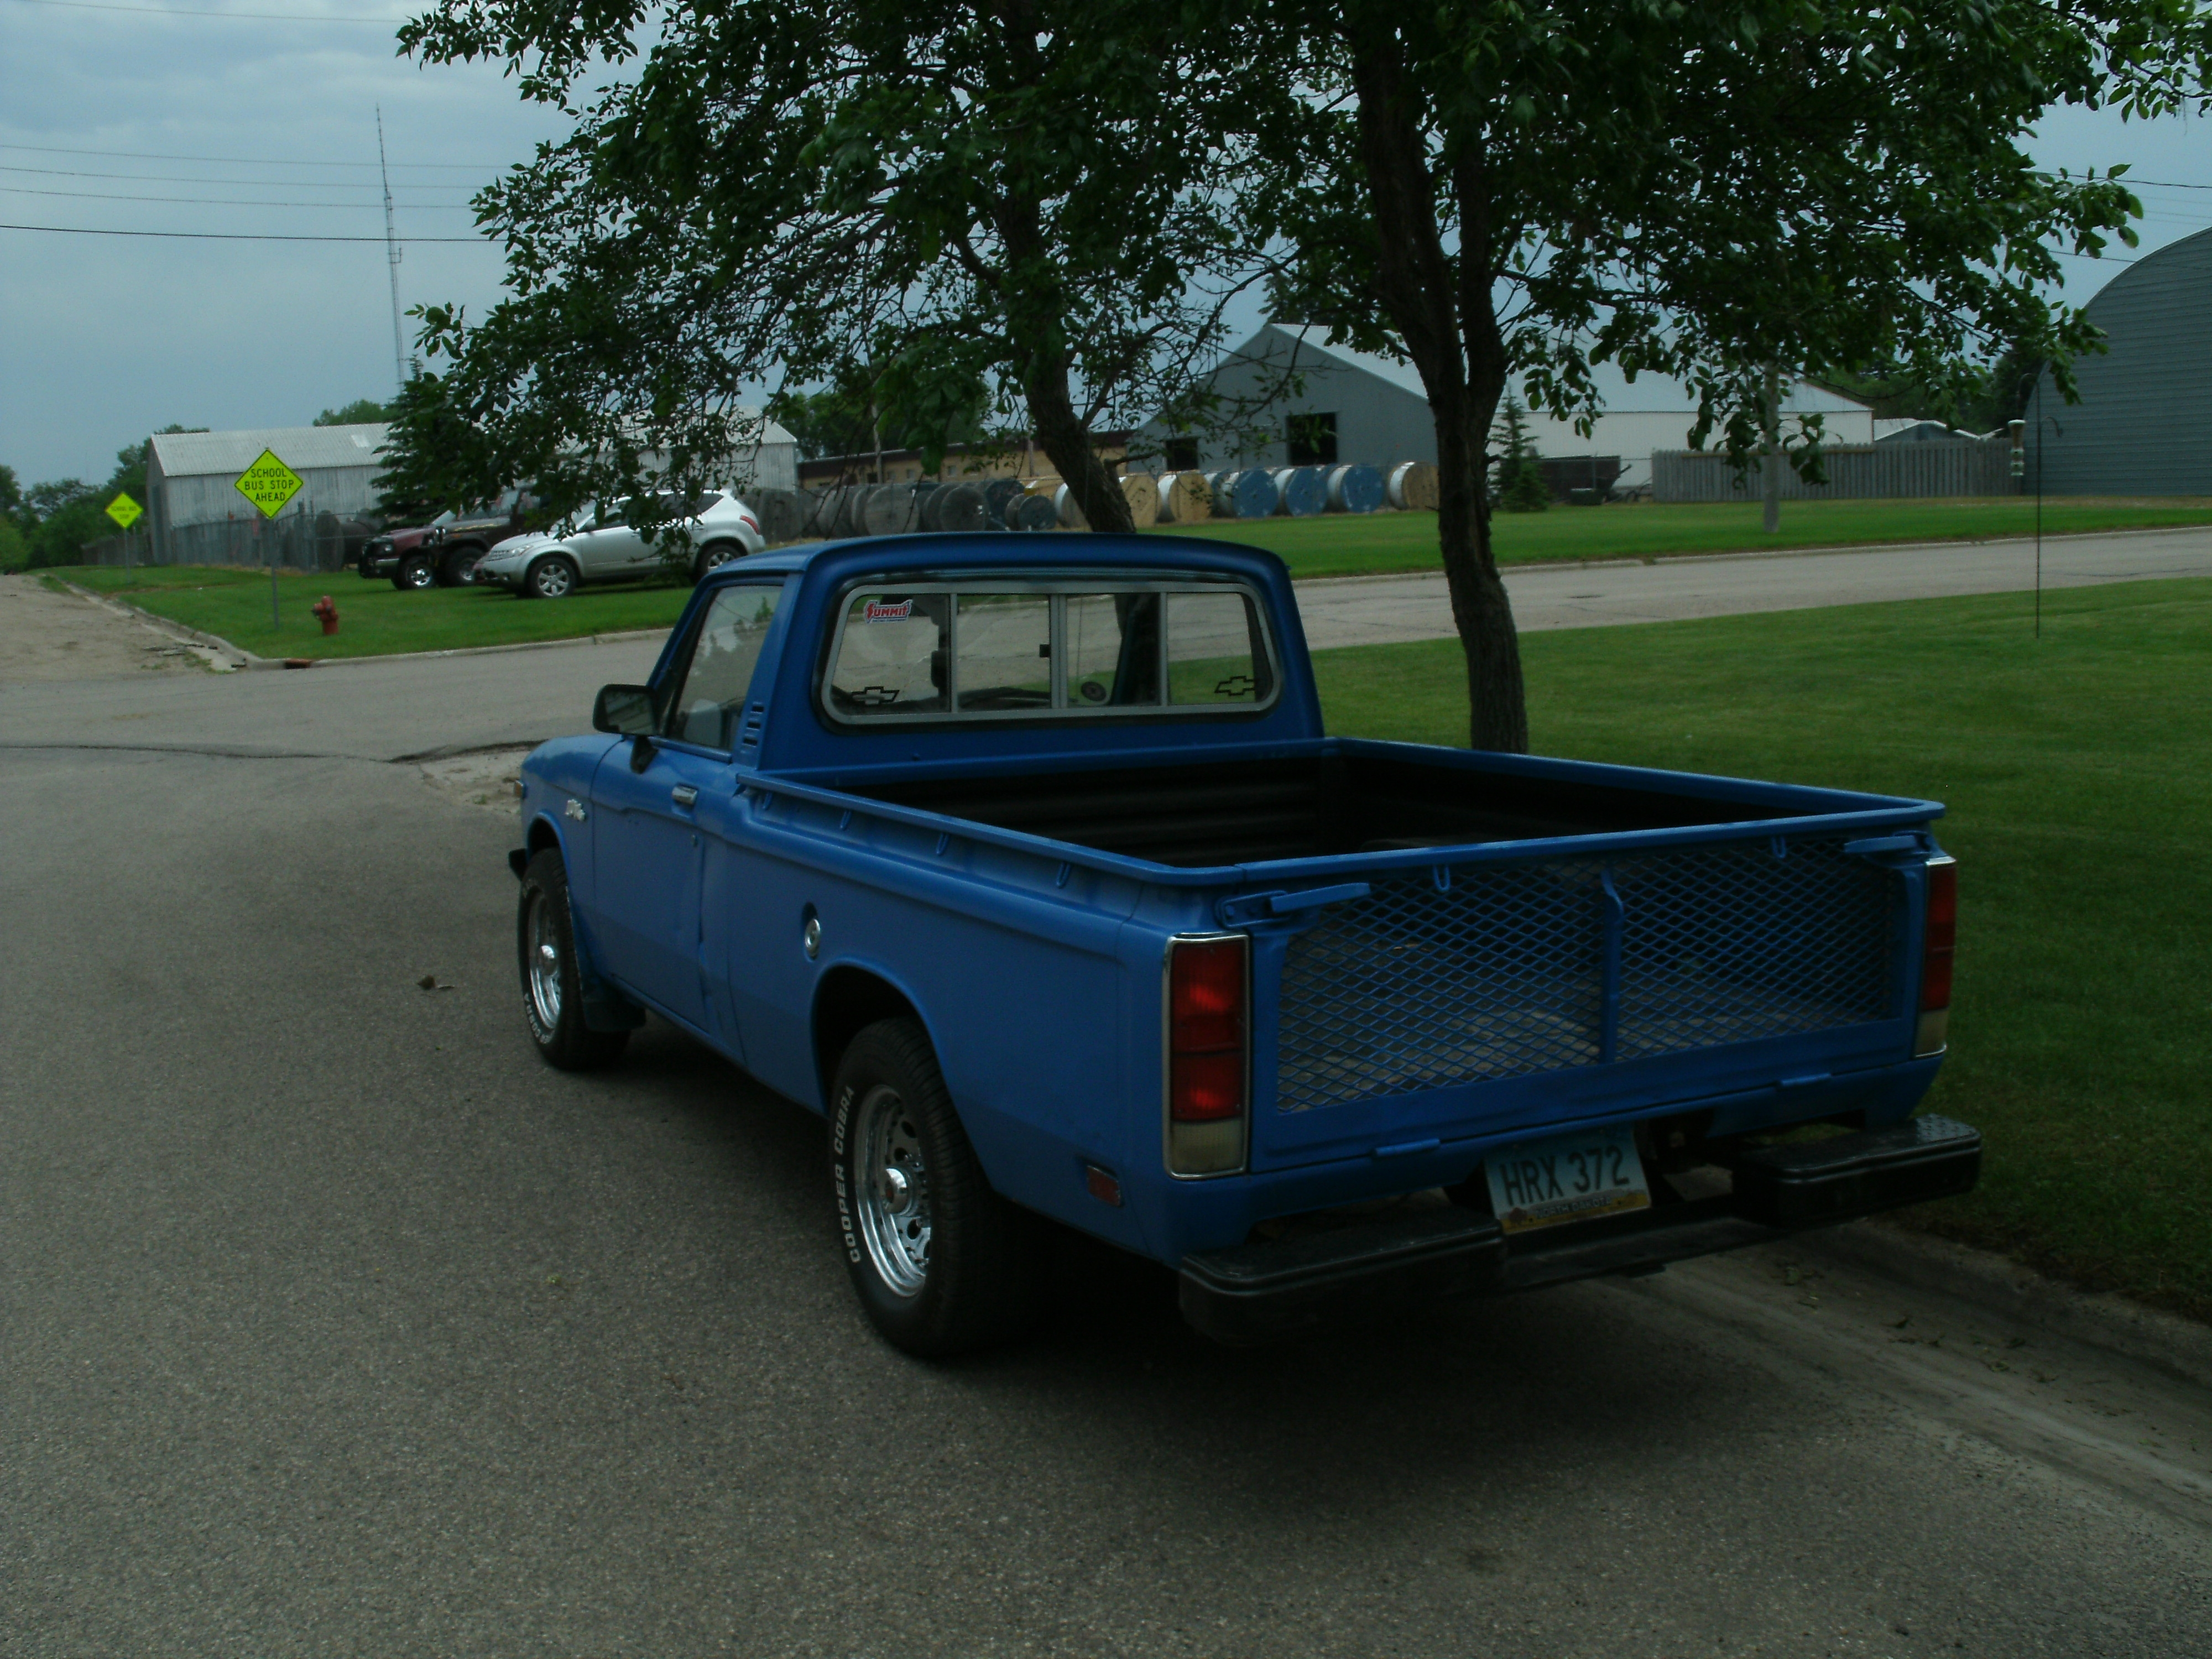 Ebensteiner 1976 Chevrolet Luv Pick Up Specs Photos Modification Chevy Truck 30398180021 Original